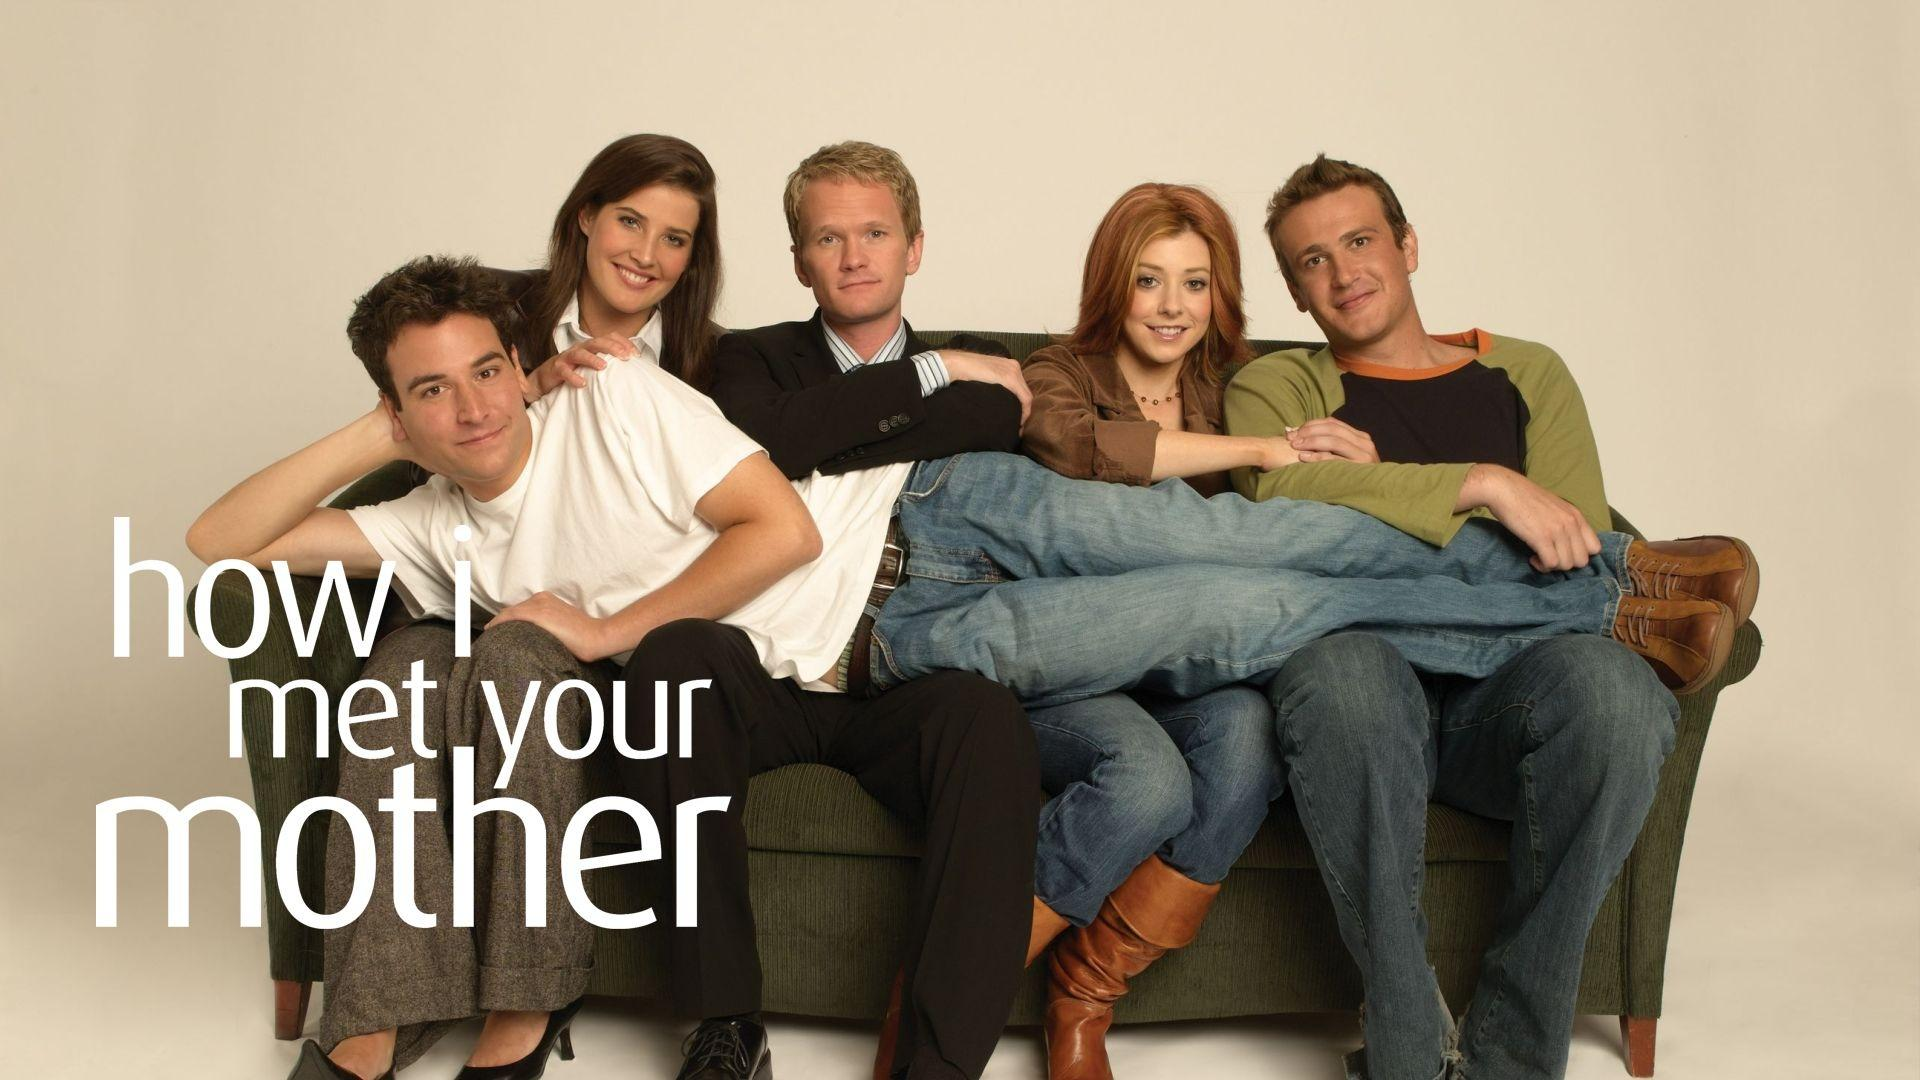 How I Met Your Mother at 2048 x 2048 iPad size wallpapers HD quality